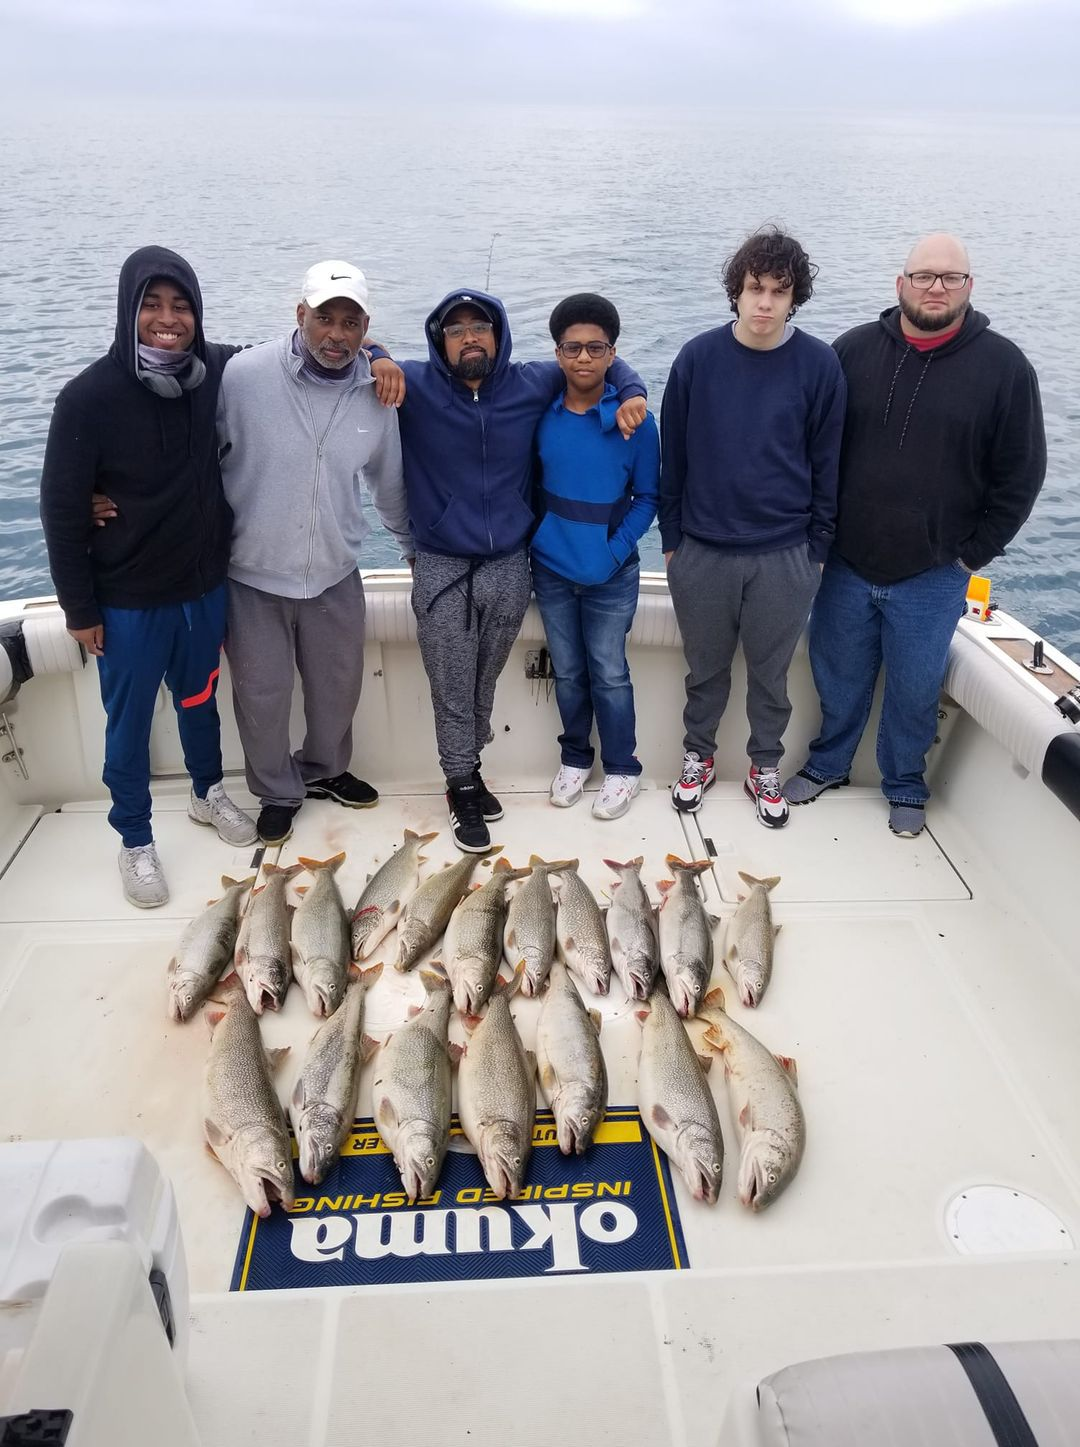 """As Capt. Rich Sleziak wrote onf Facebook, """"Great afternoon Trip Aboard the Triplecatch!! Thanks John and crew! 6 man Trout limit in no time!!"""" Provided photo"""